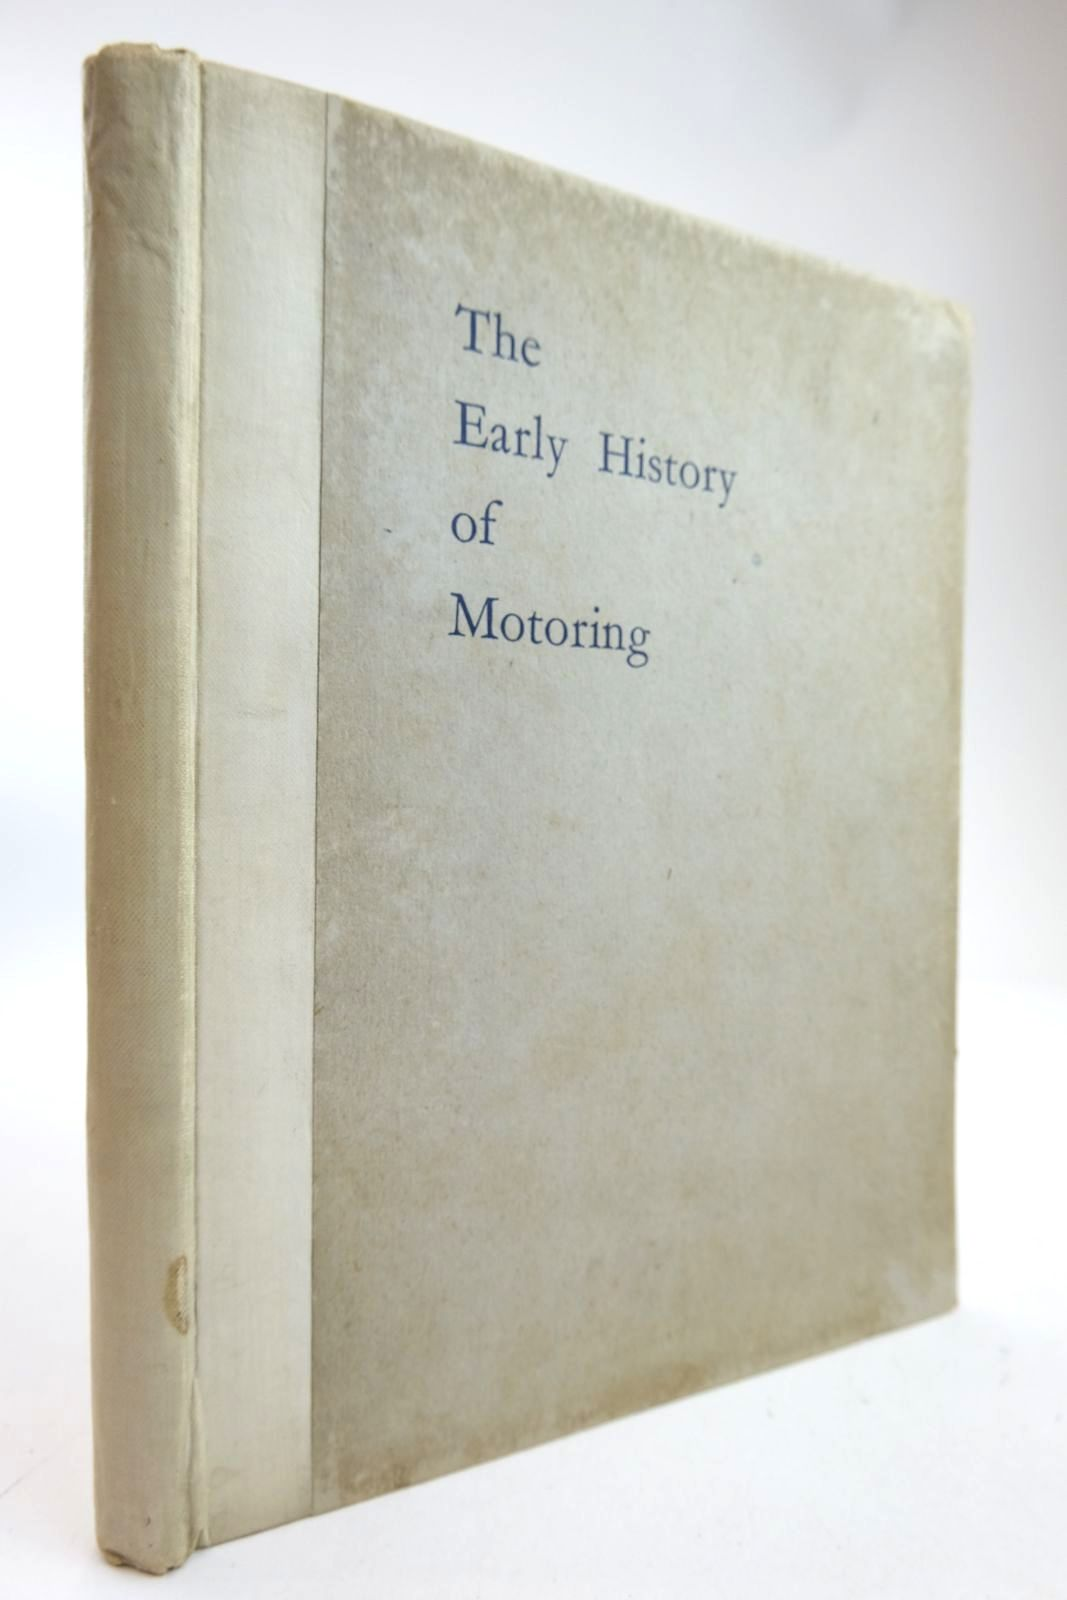 Photo of THE EARLY HISTORY OF MOTORING written by Johnson, Claude published by Ed. J. Burrow & Co. Ltd. (STOCK CODE: 2133371)  for sale by Stella & Rose's Books